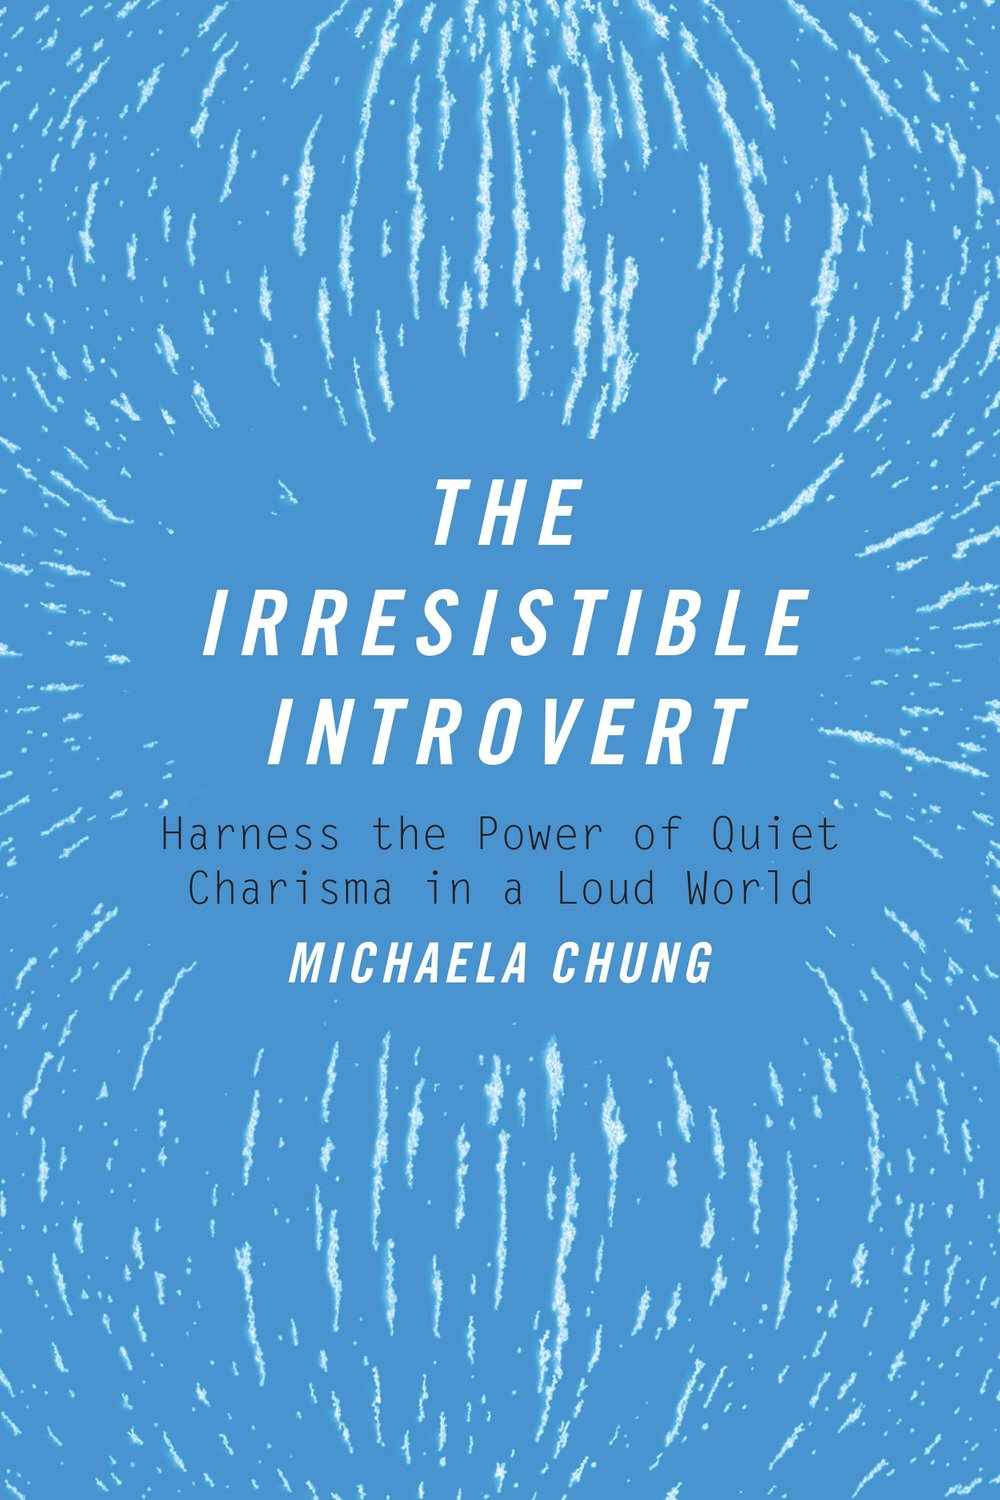 The irresistible introvert - Michaela Chung